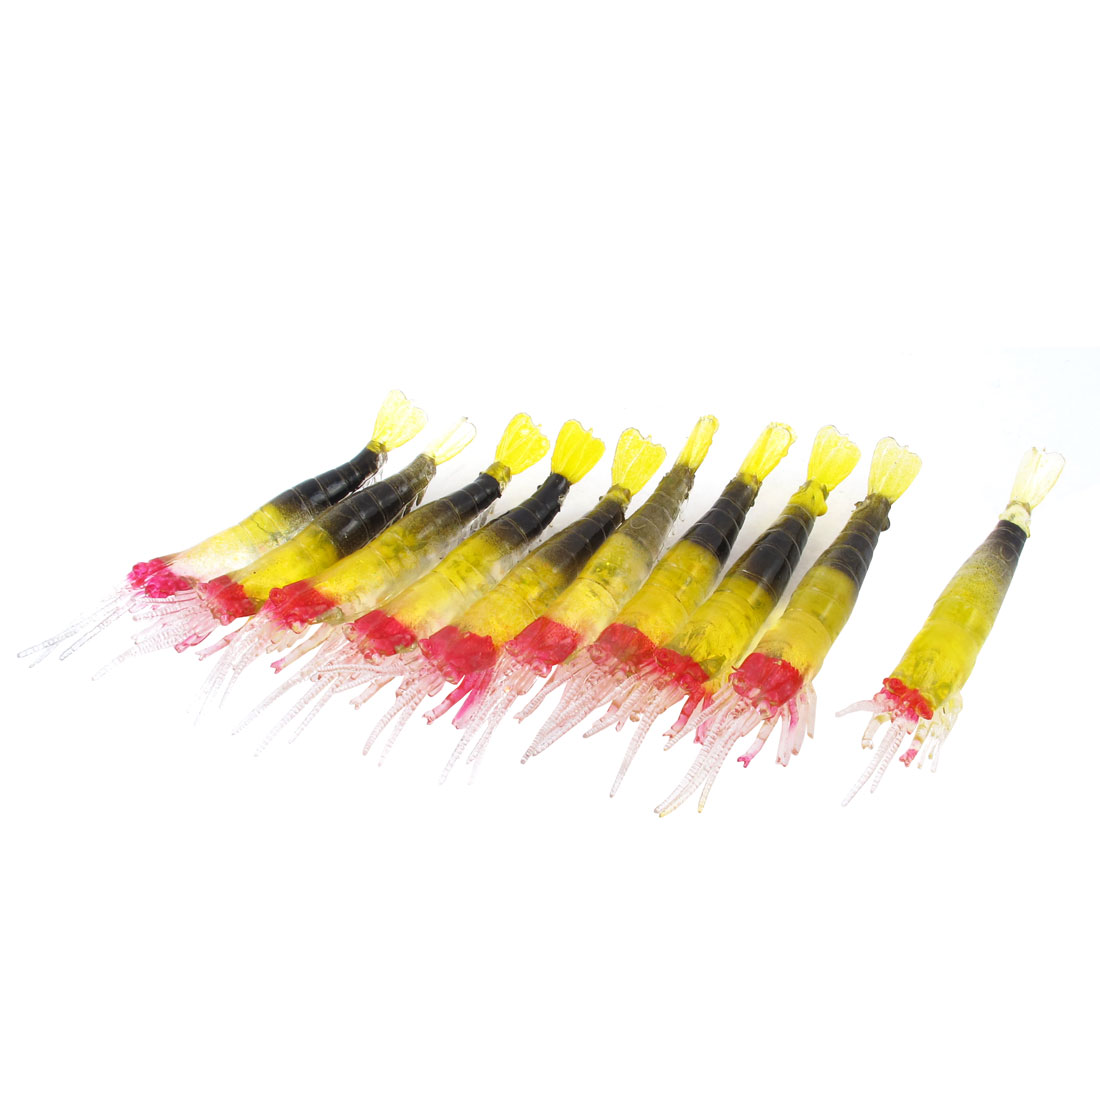 10 Pcs Silicone Artificial Fishing Bait Shrimp Lure Clear Yellow Black